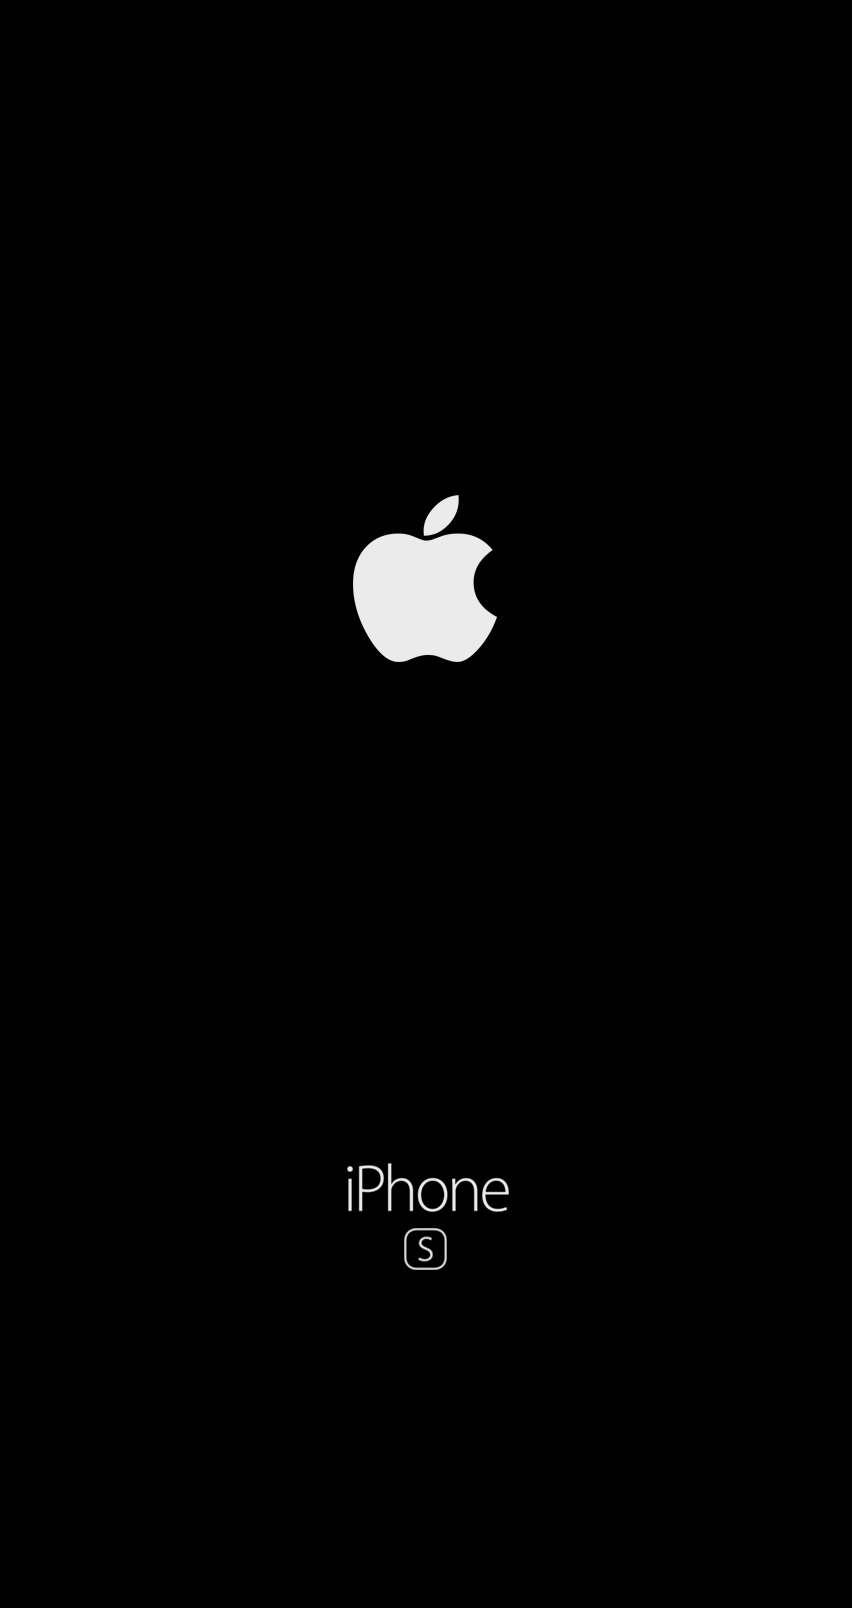 Unduh 3000 Wallpaper Black Iphone 6s HD Paling Keren